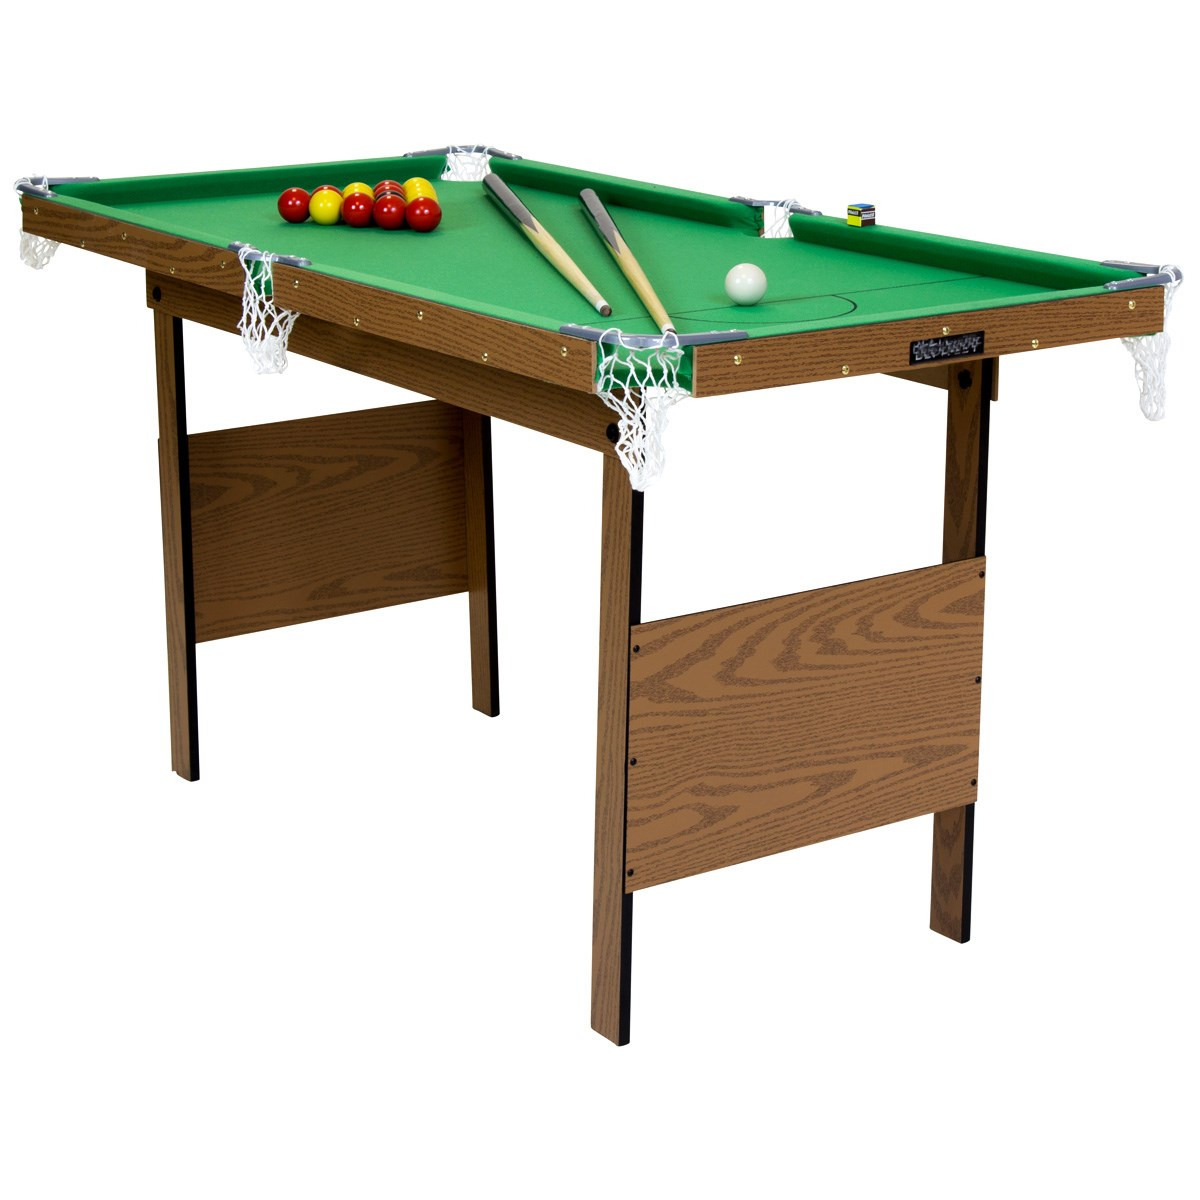 4ft Junior Snooker and Pool Table